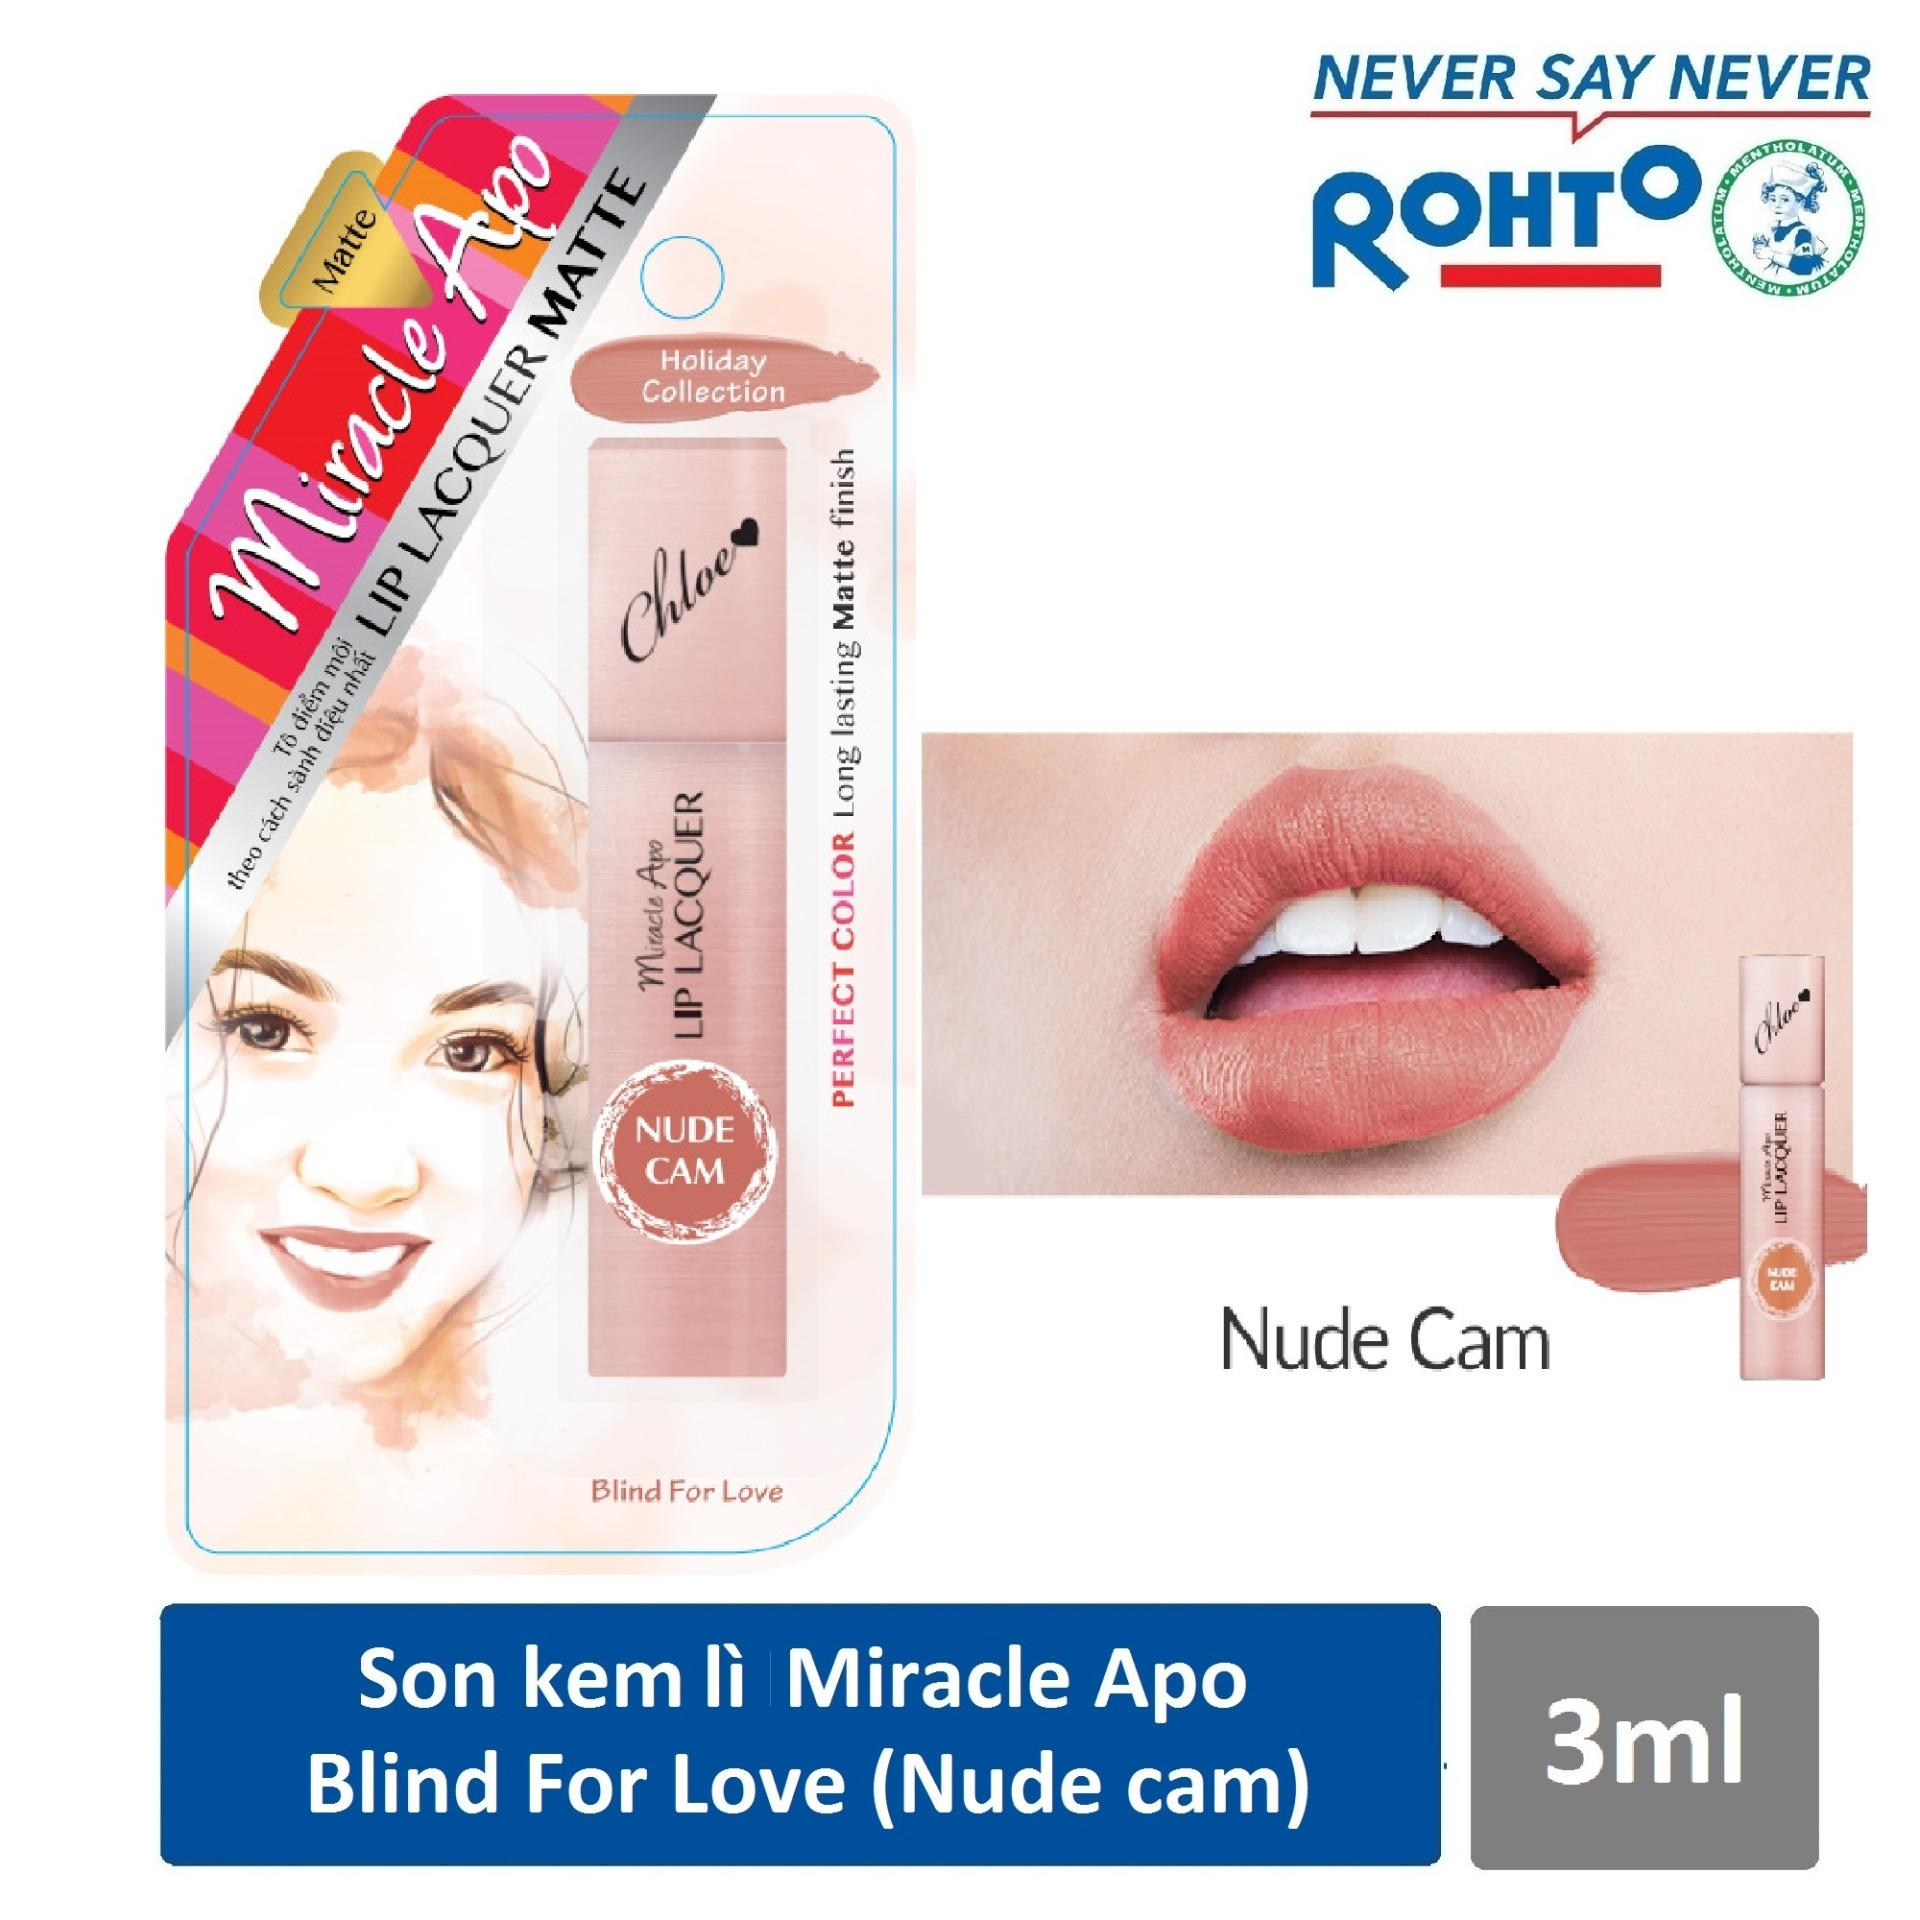 Hình ảnh Son kem lì Miracle Apo Lip Lacquer Matte Holiday Collection Blind For Love 3ml (Nude cam)